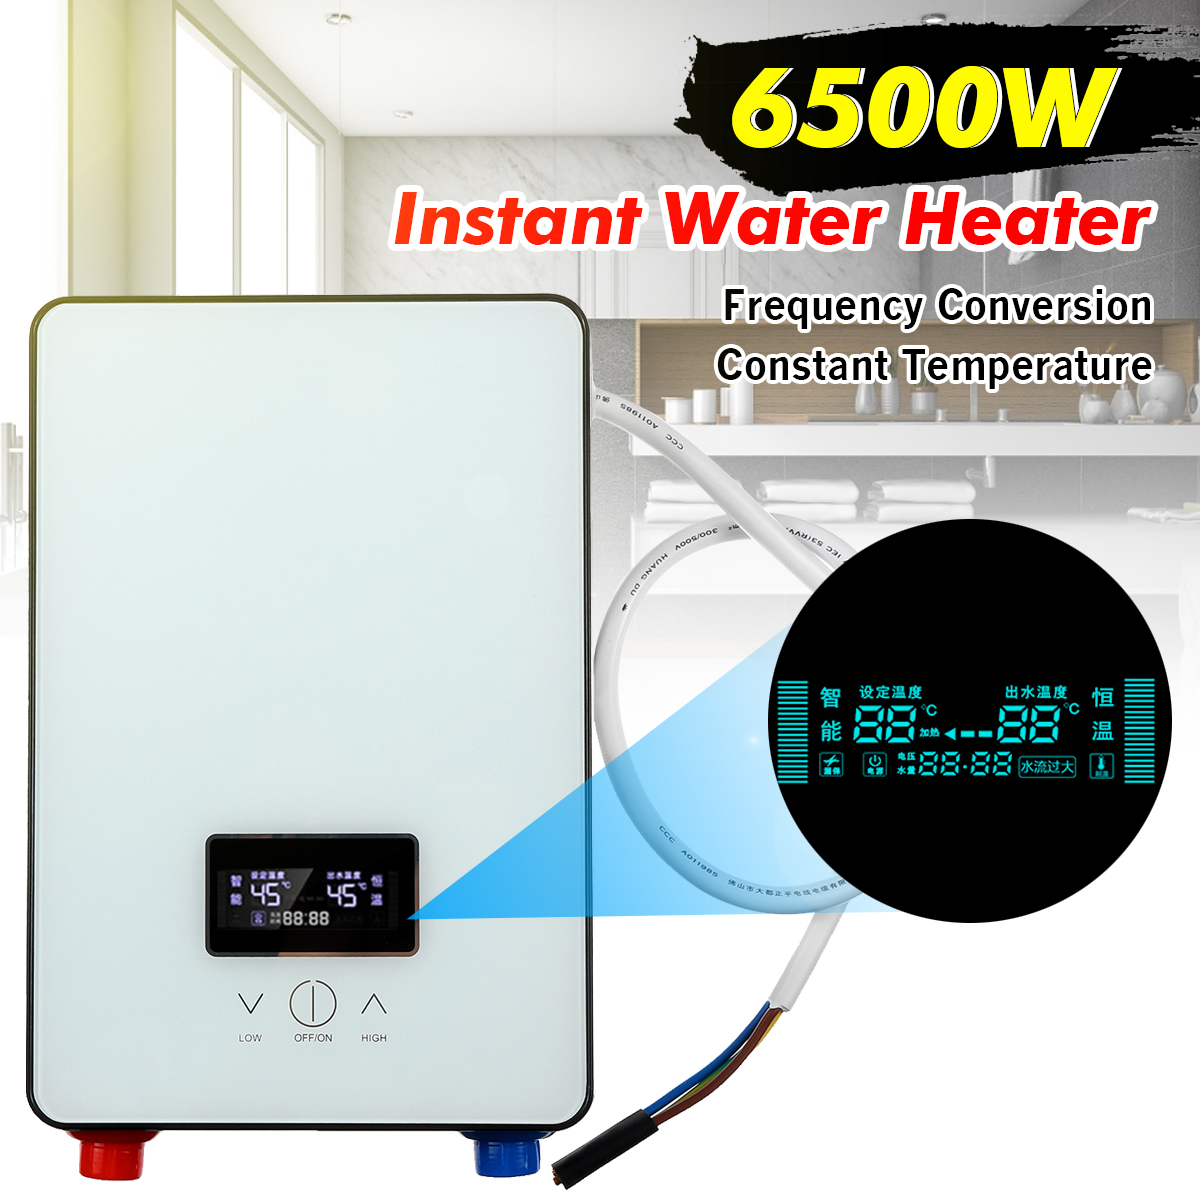 6500W AC220V Instant Water Heater Bathroom Tankless Electric Water Heater Intelligent Self-checking LCD Digital Display White